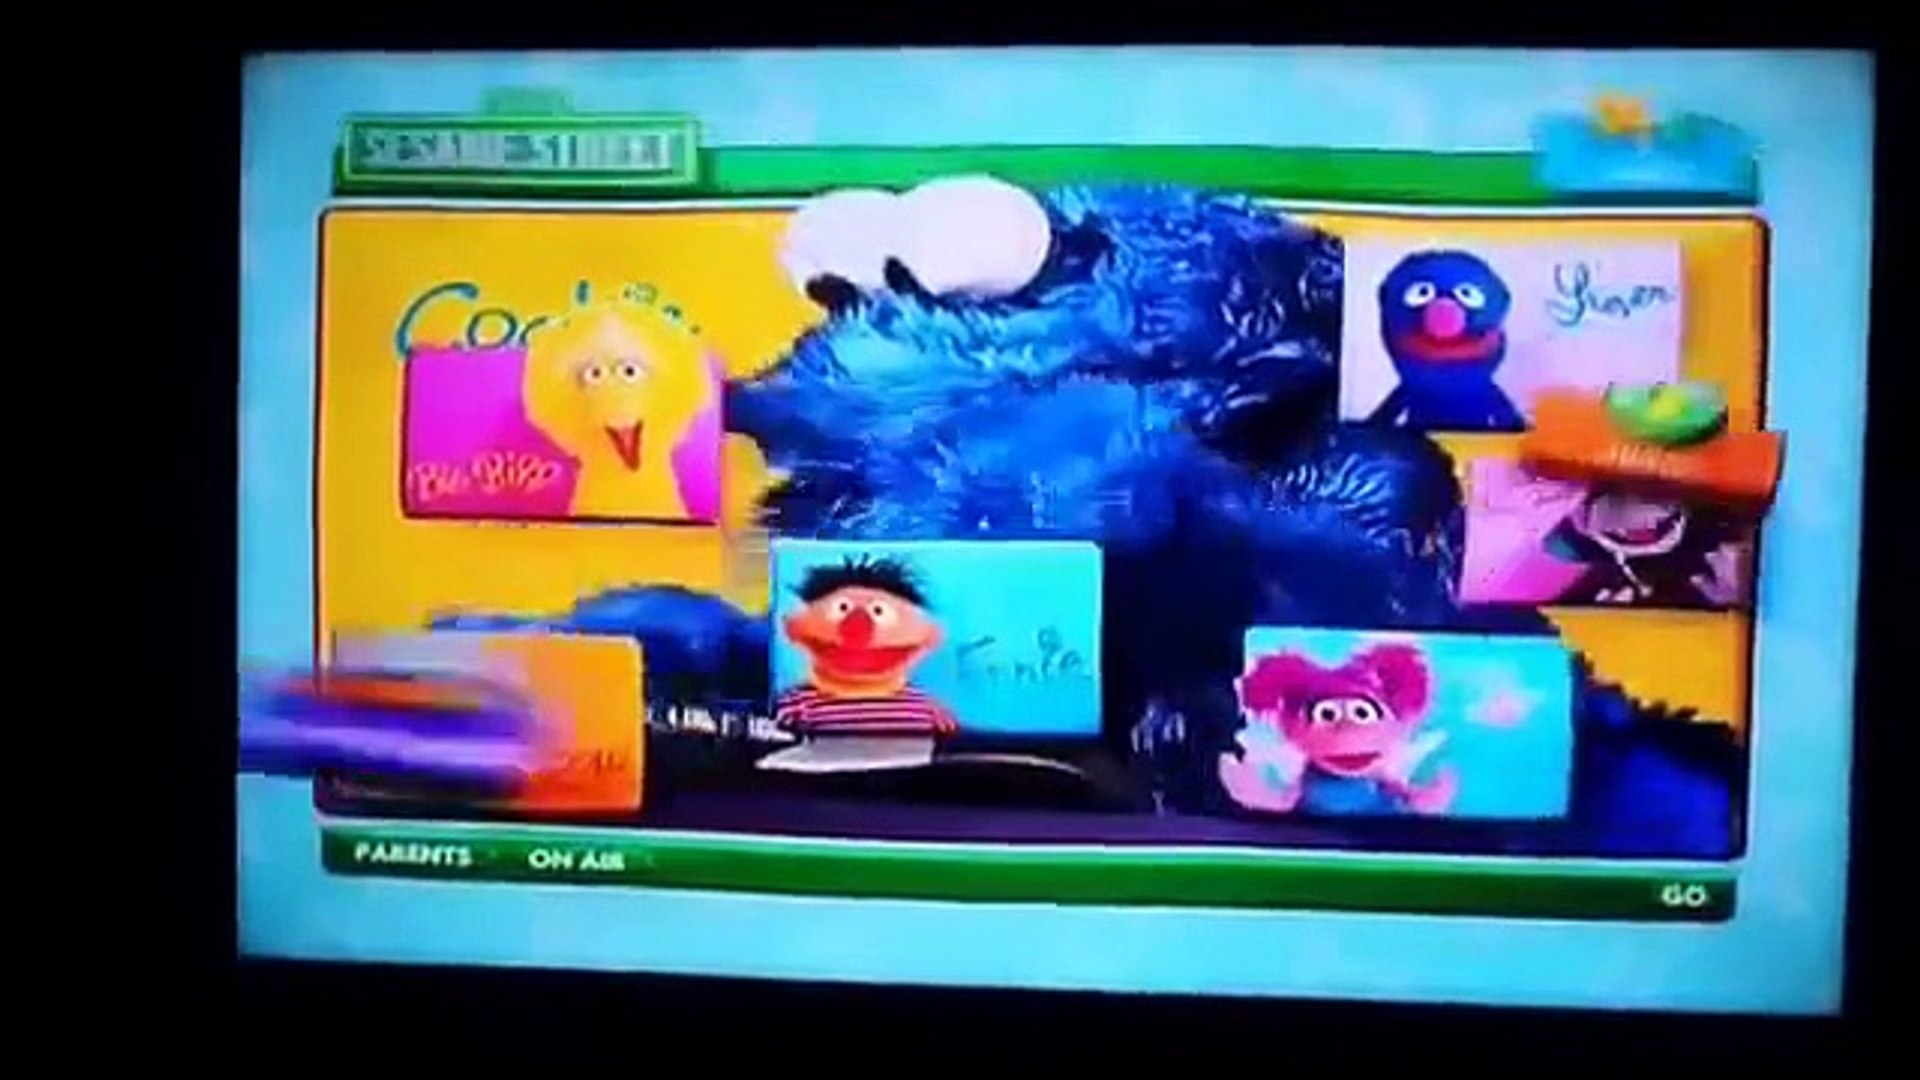 Opening To Elmos World Lets Play Music 2010 Dvd